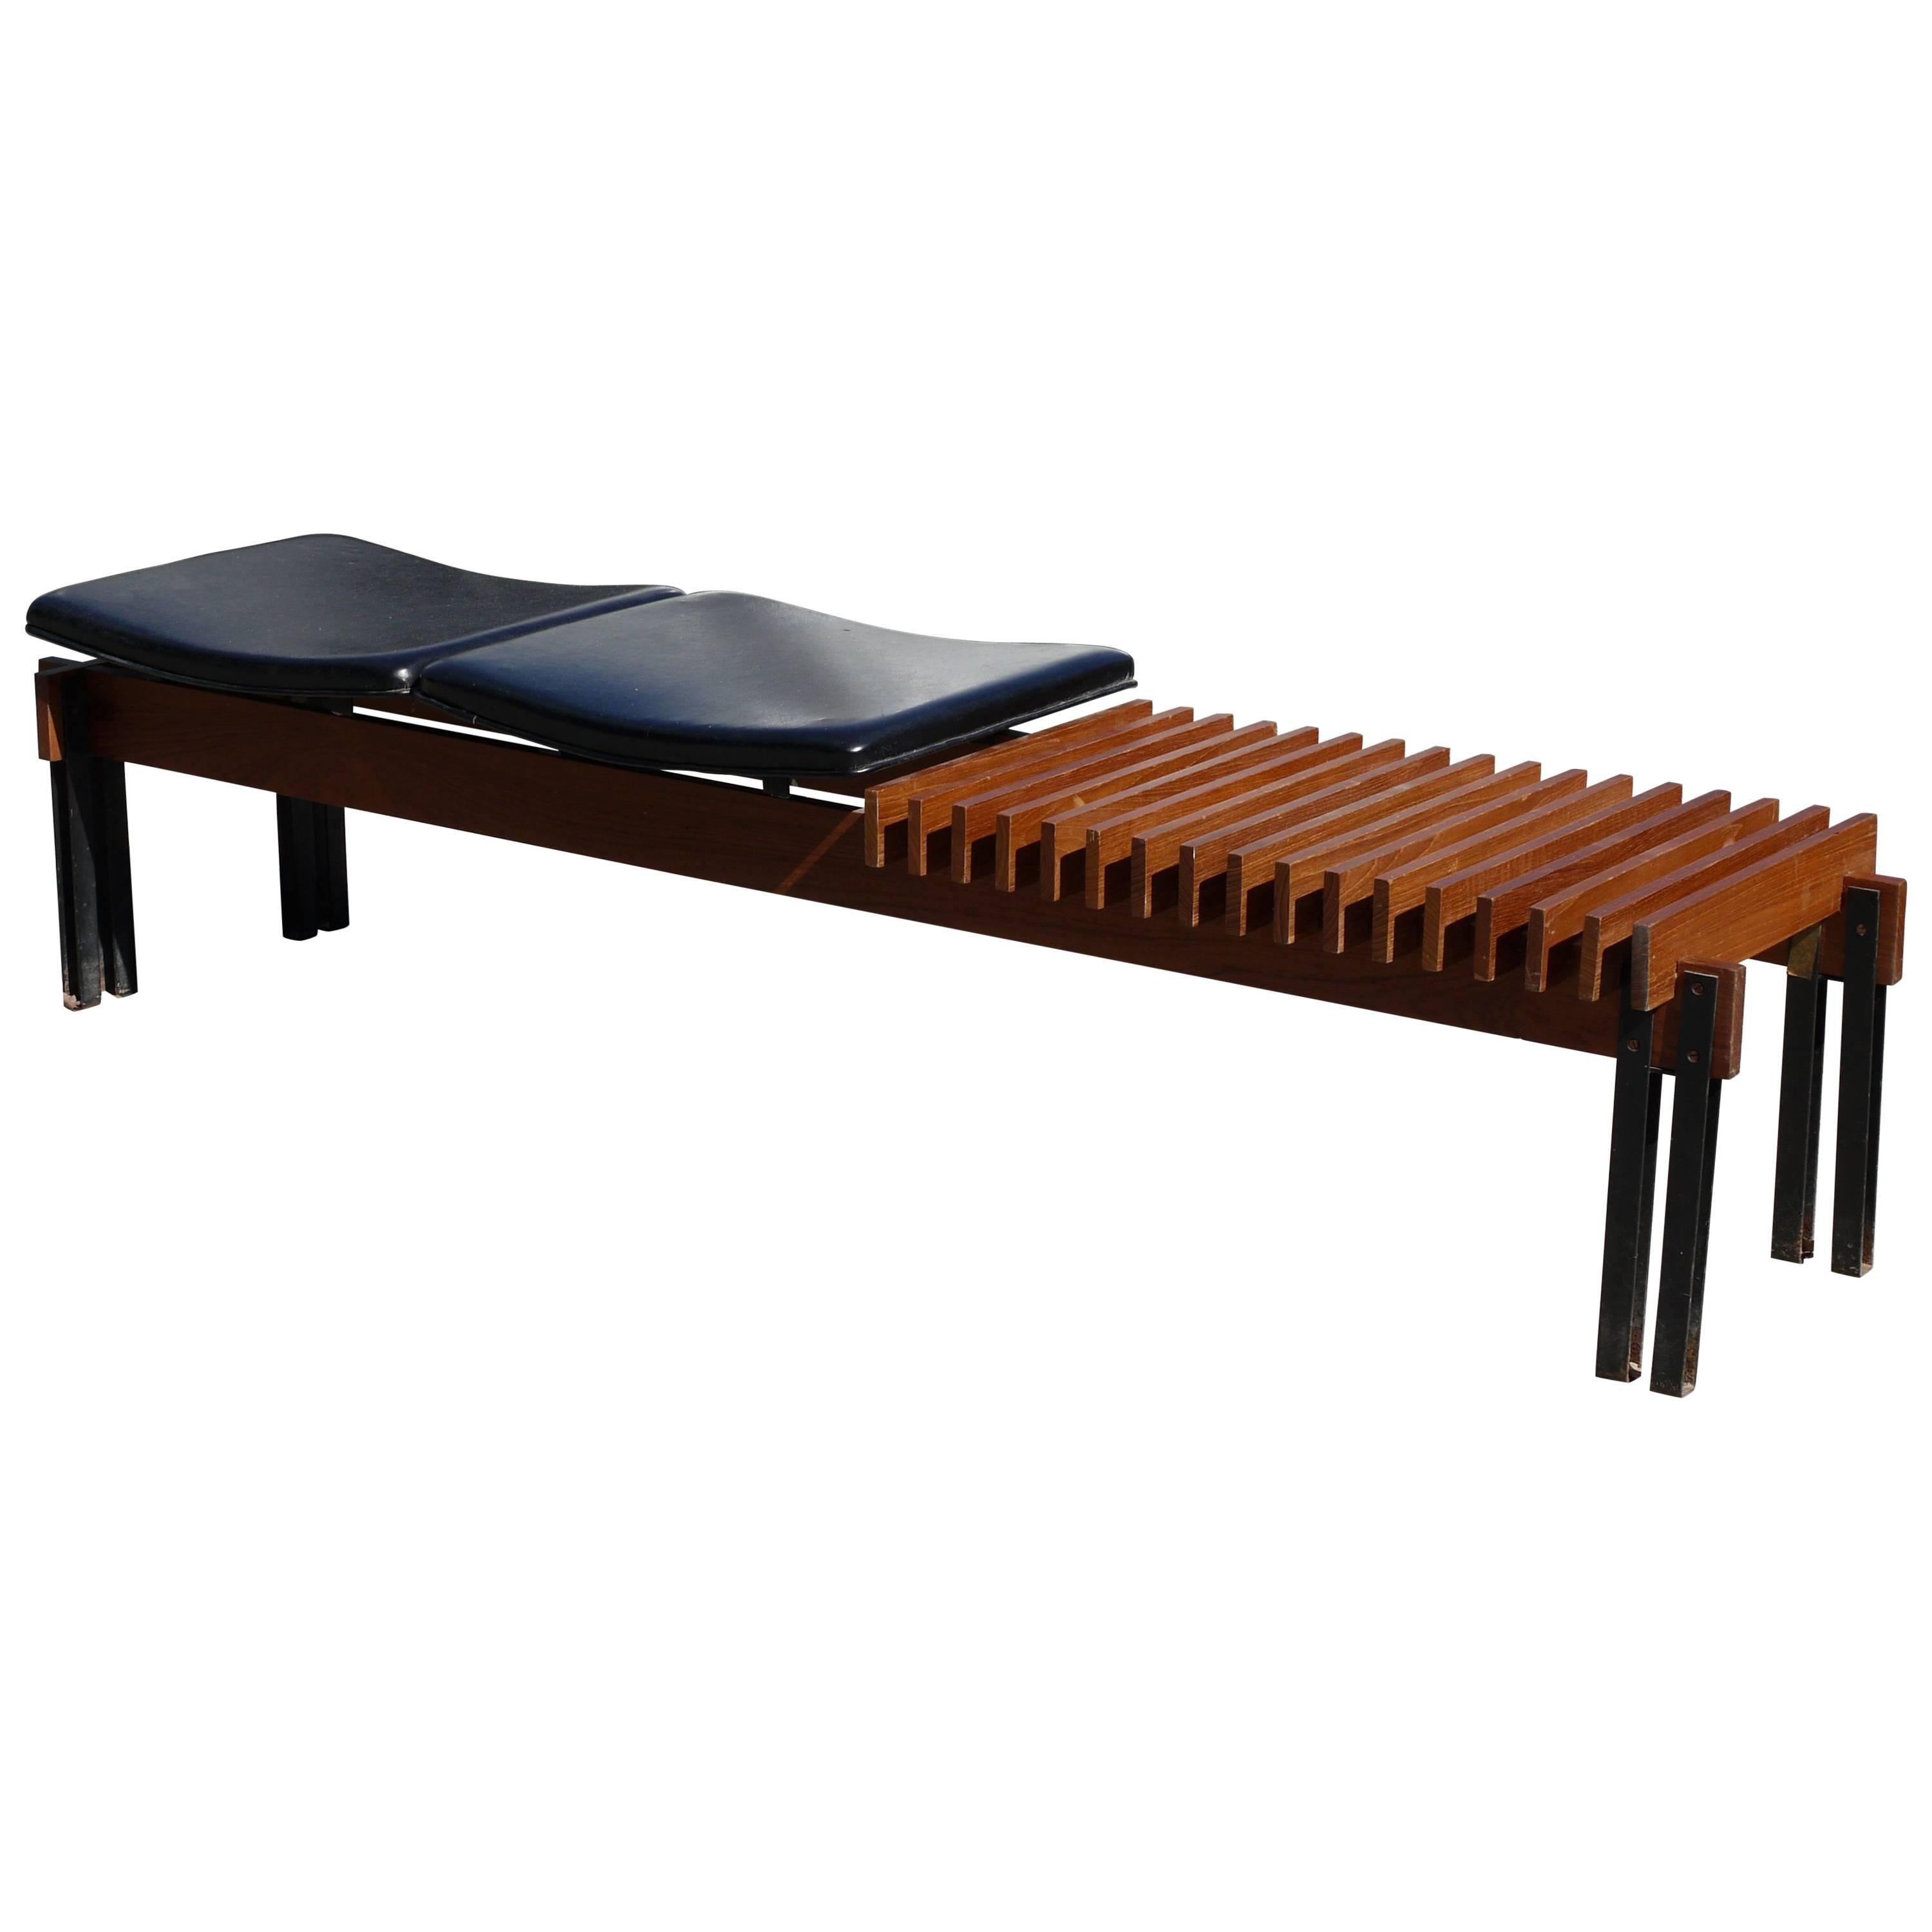 Slatted Teak Bench by Inge and Luciano Rubino for Apec